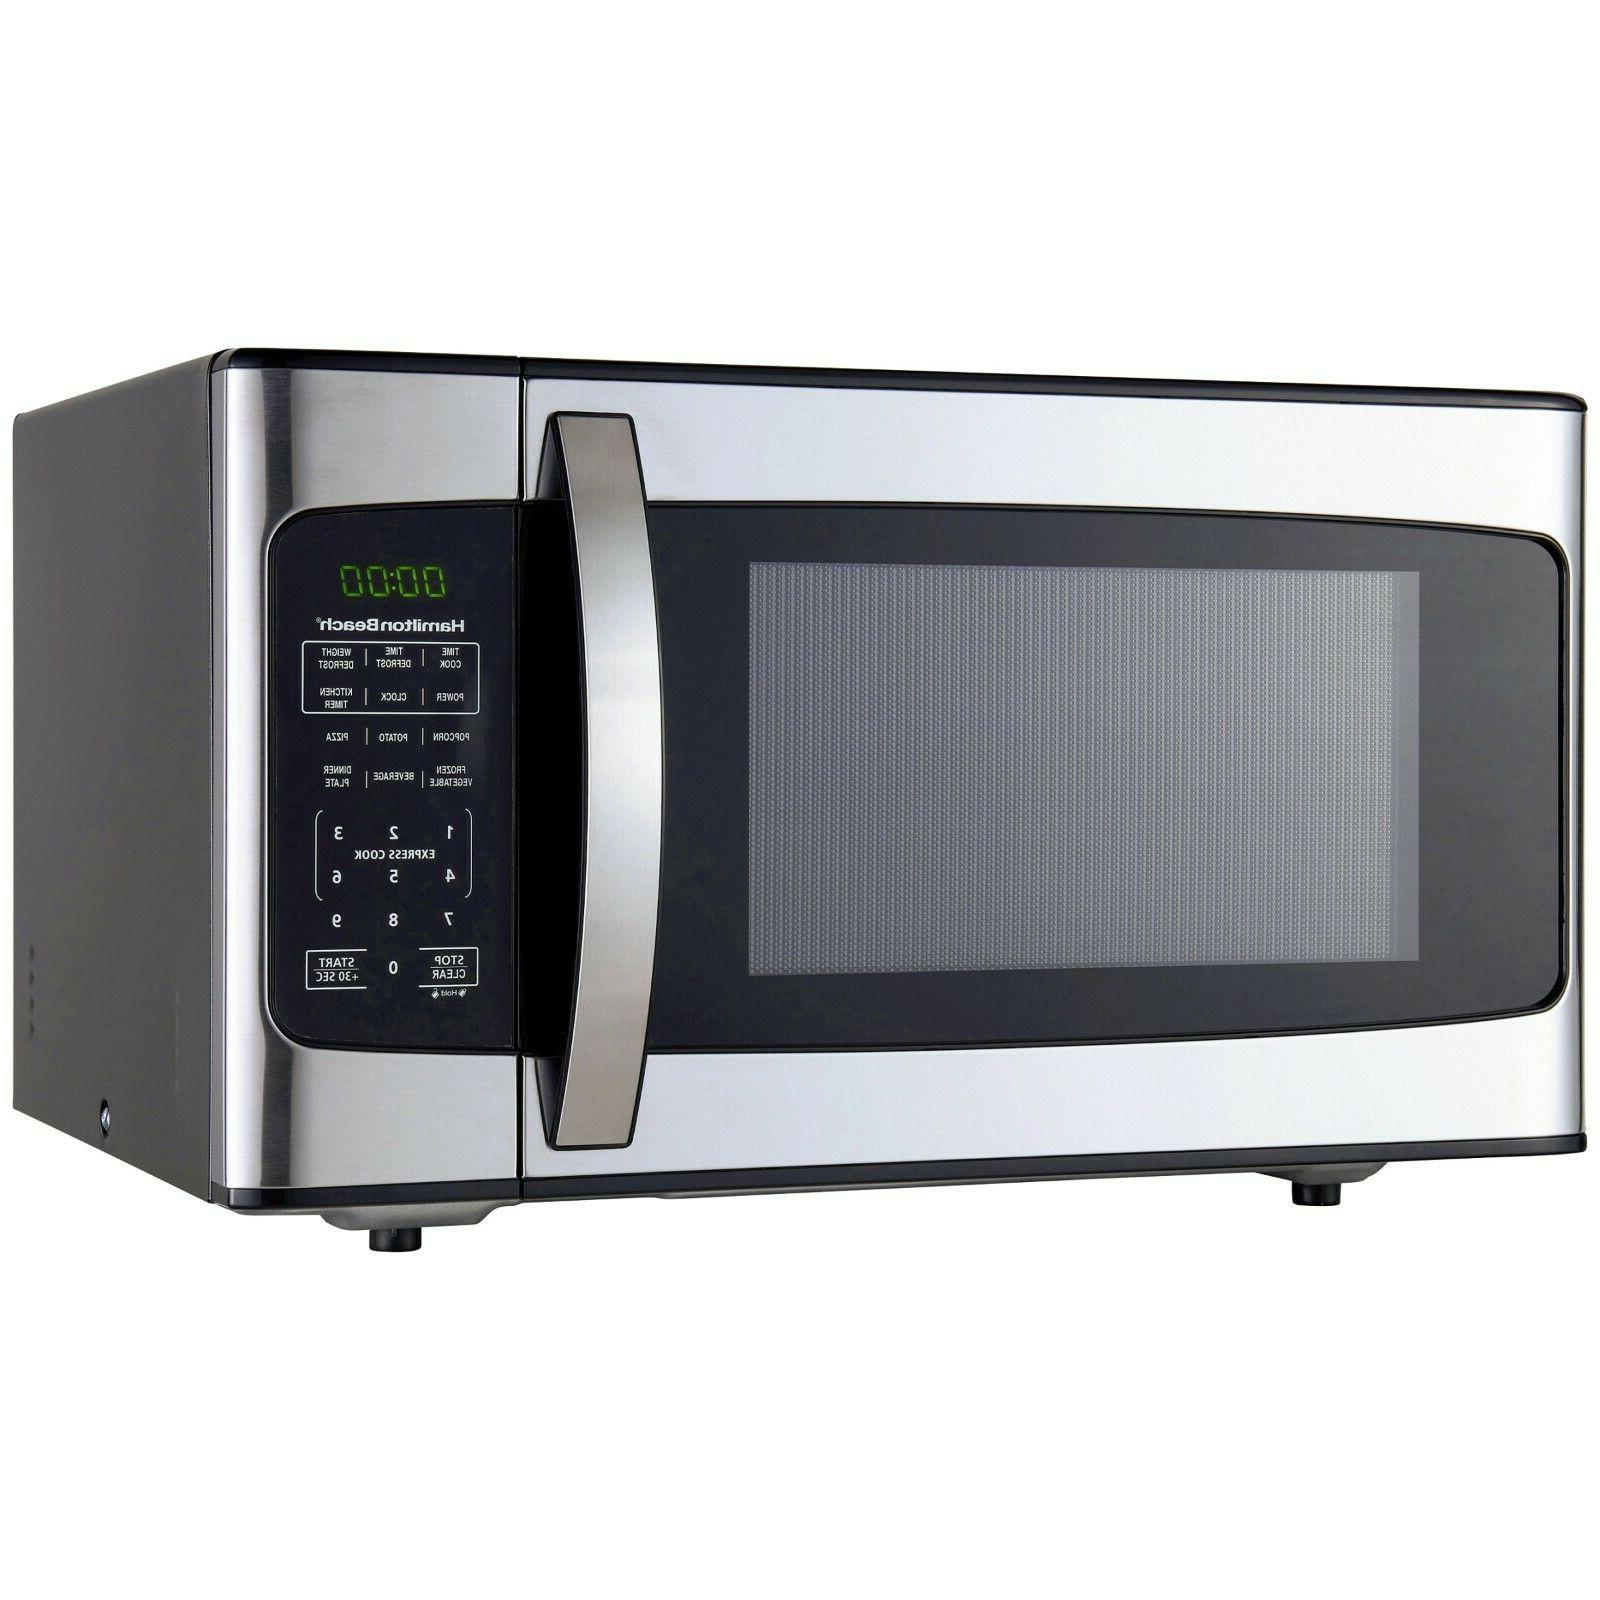 1.1 Cu-Ft. 1000 Watt Microwave Oven Stainless Steel Countert